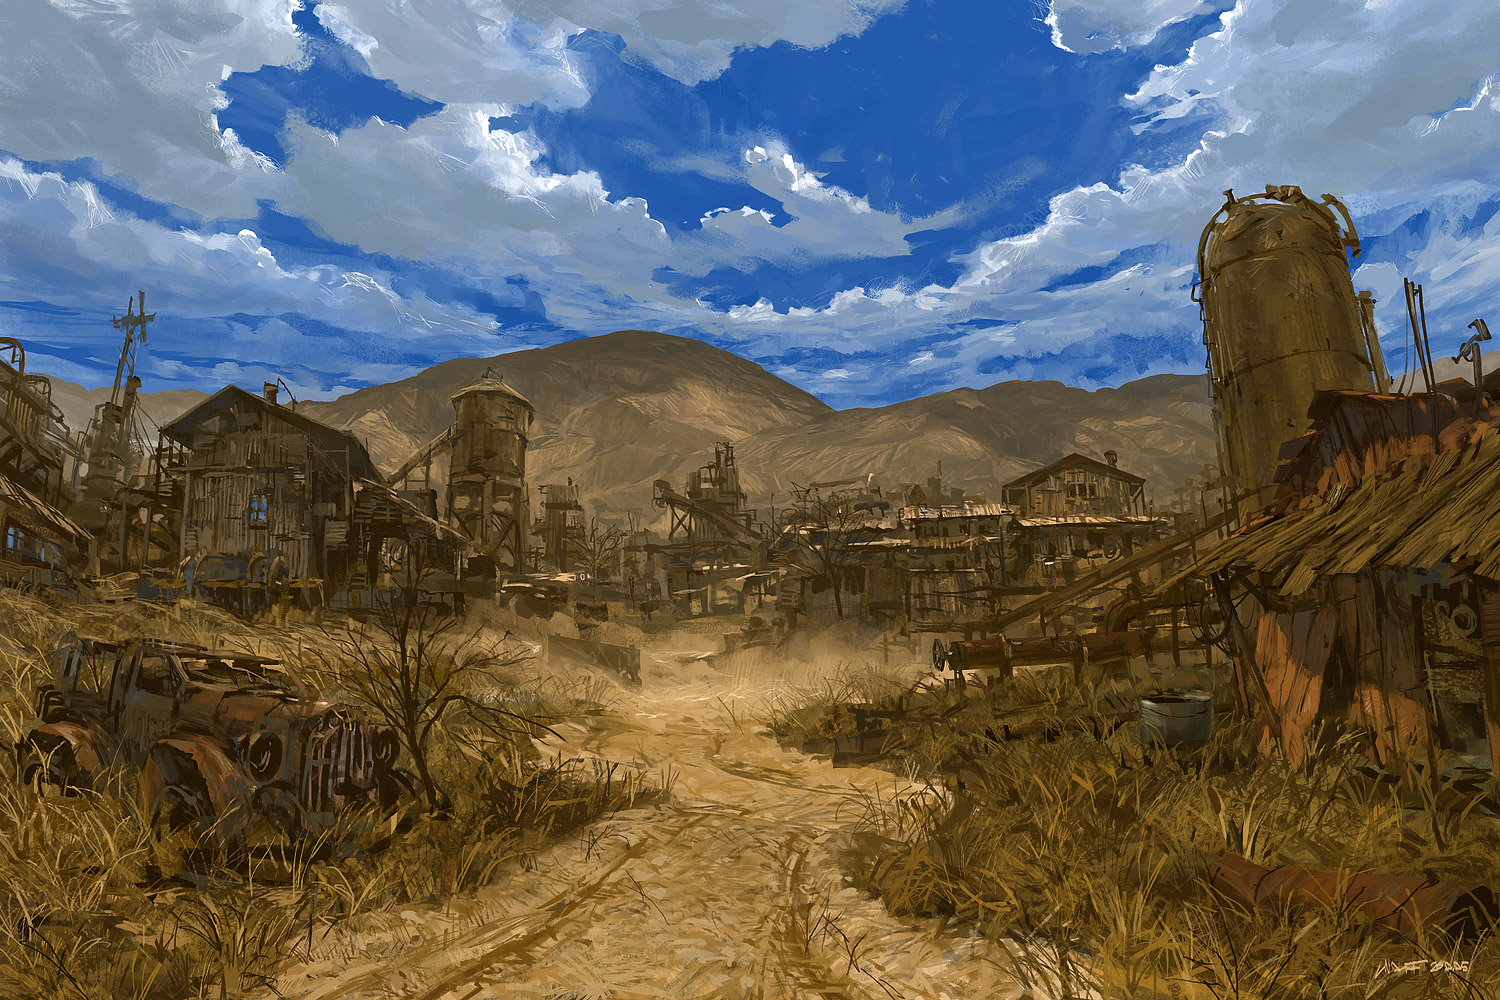 1500x1000px ghost town wallpaper - wallpapersafari